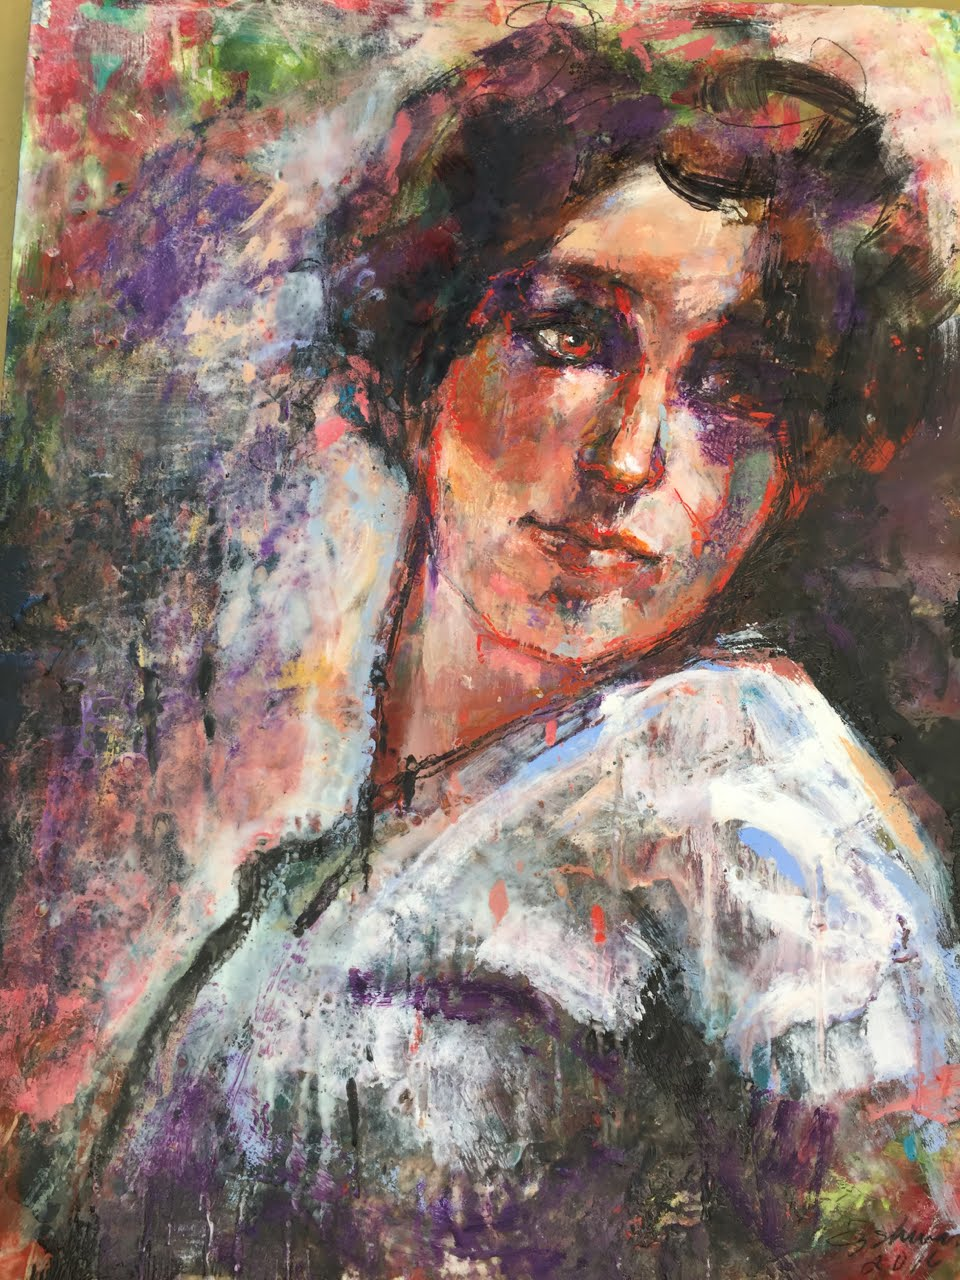 online class:Painting Portraits in Encausstic